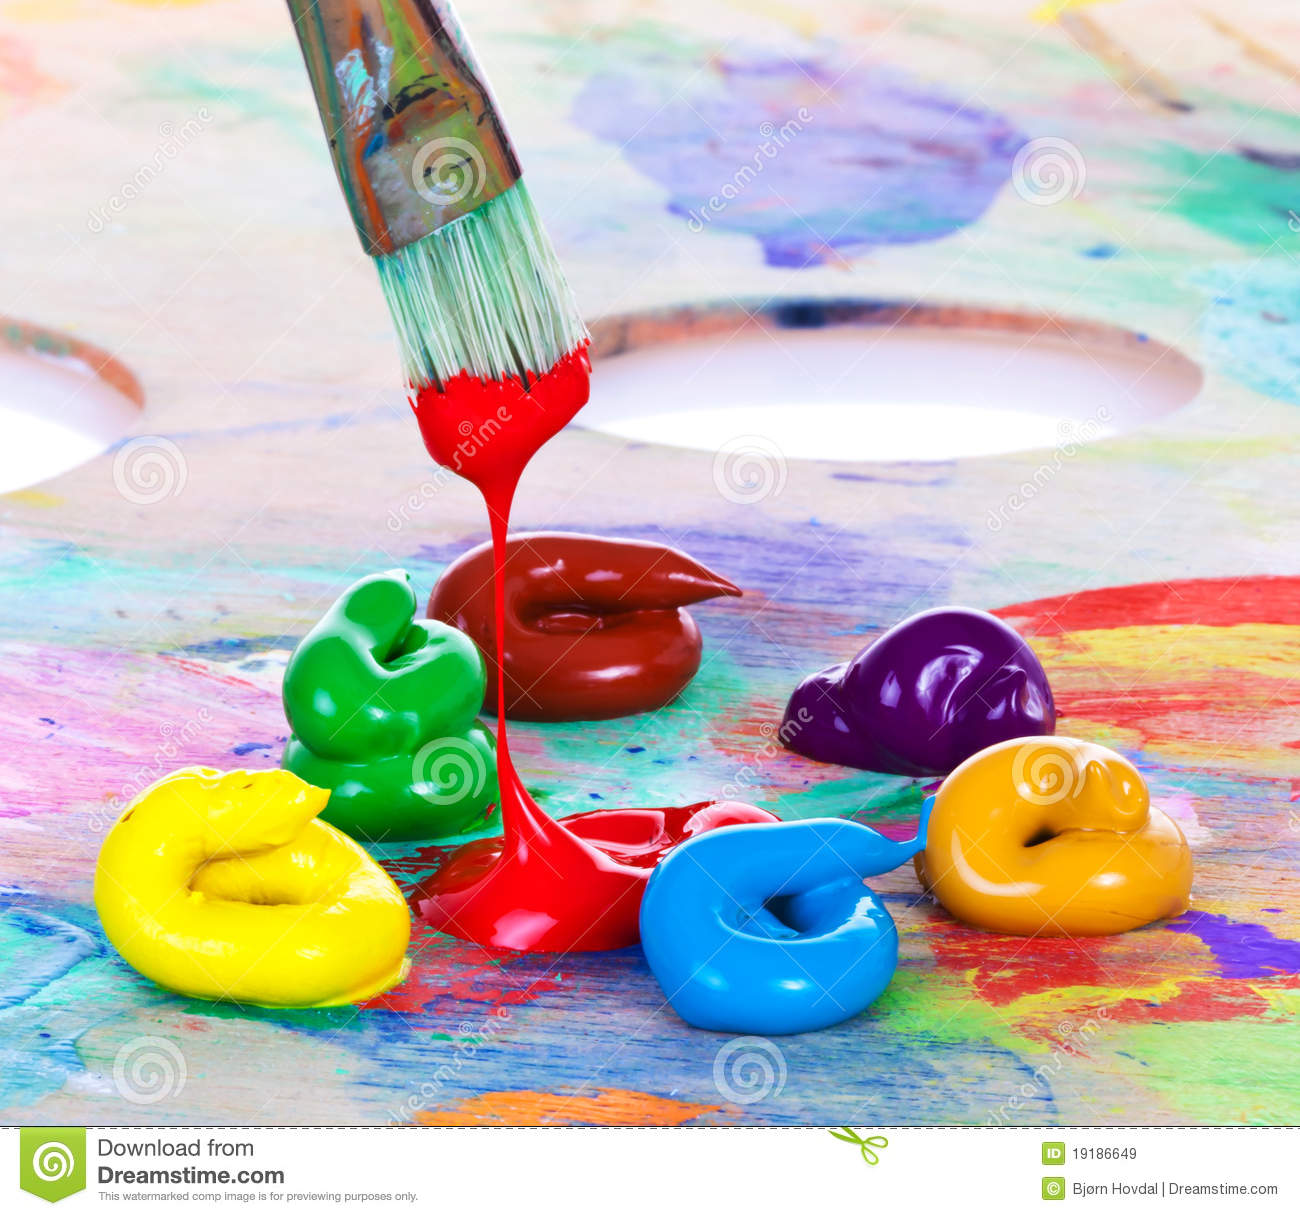 Oil Paint And Brush Royalty Free Stock Images - Image: 19186649